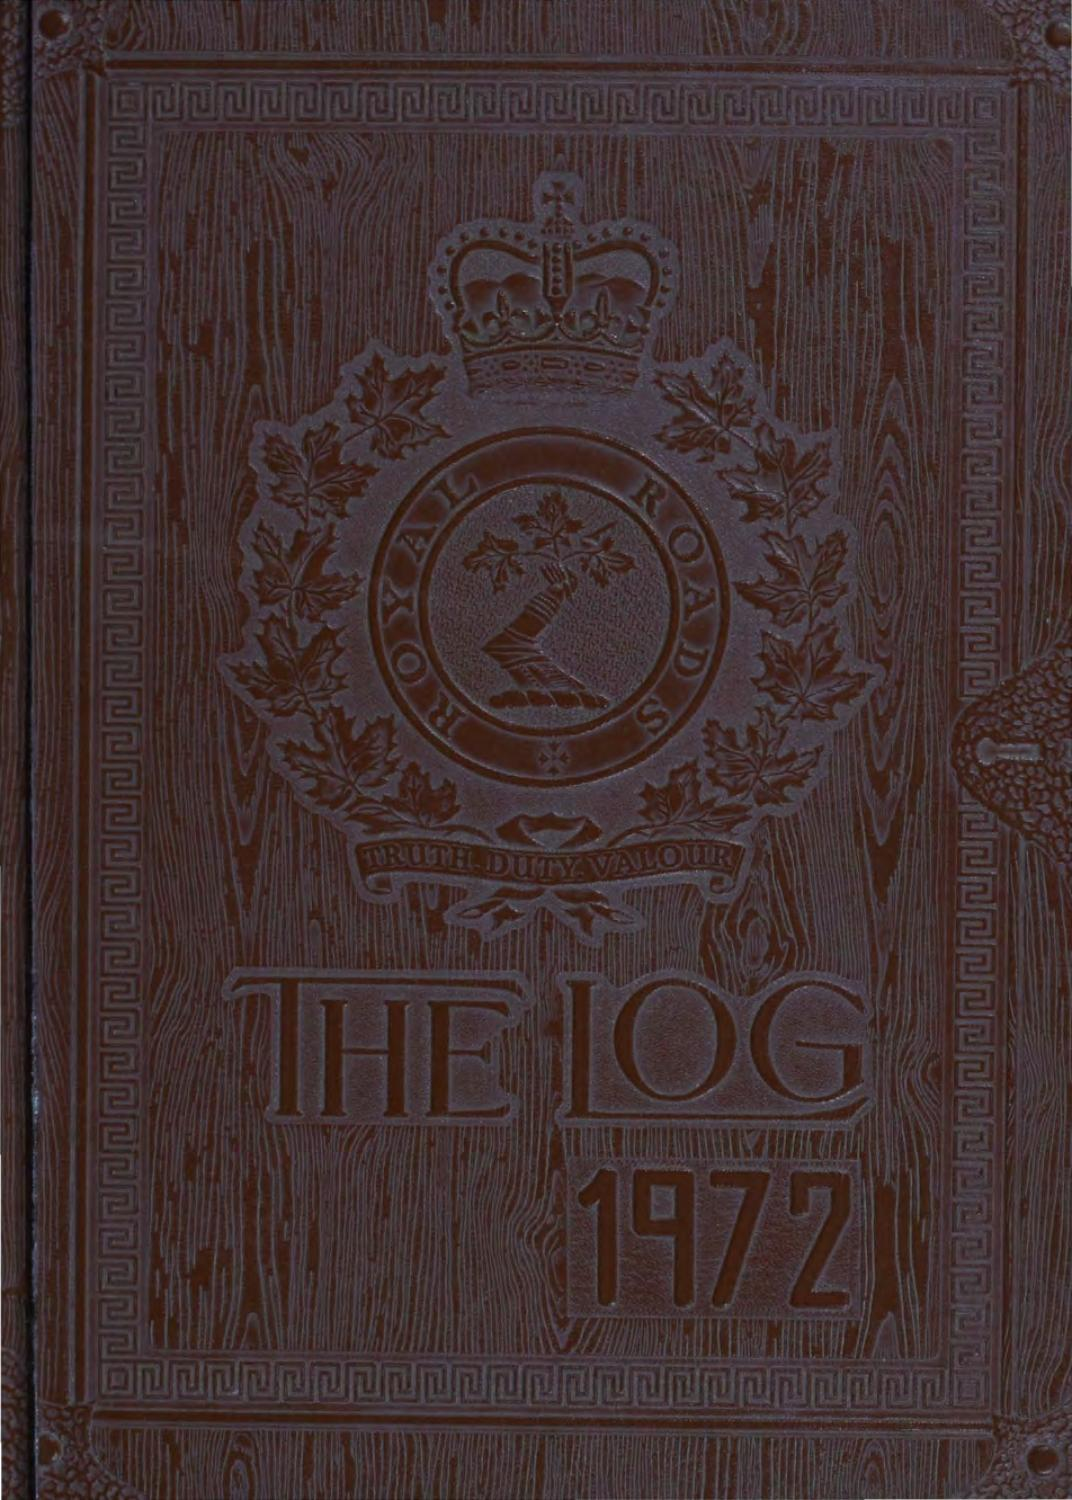 1972 Log Royal Roads Military College by Royal Roads ...